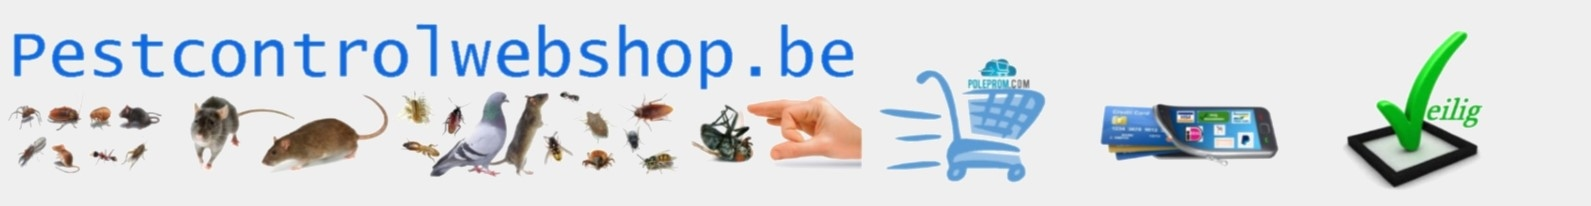 Pestcontrolwebshop.be